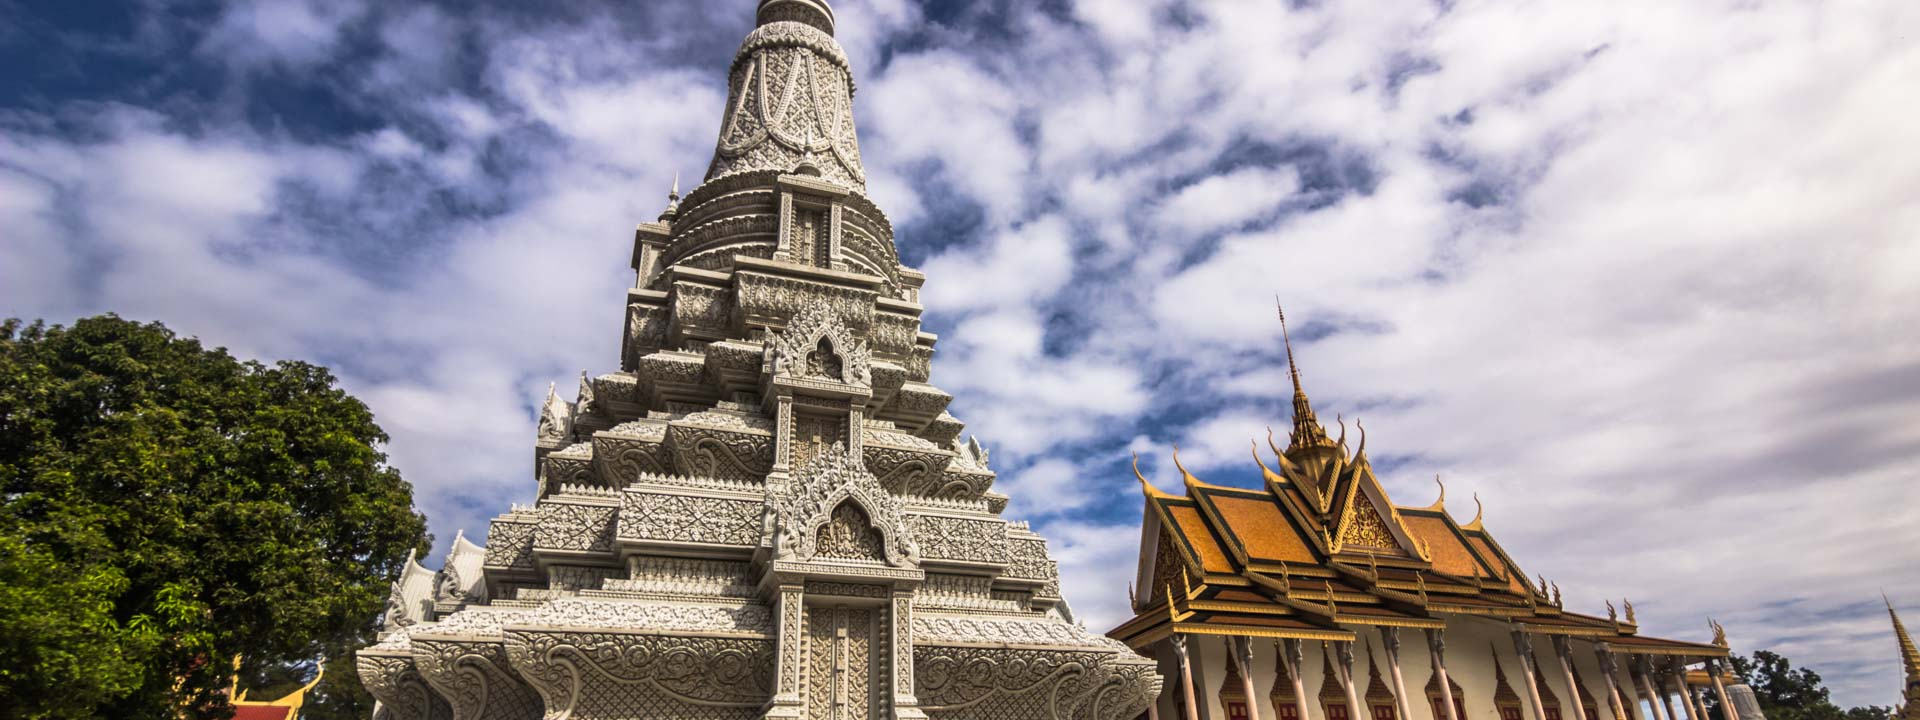 Phnom Penh & Siem Reap – Two Worlds One Kingdom 4 days